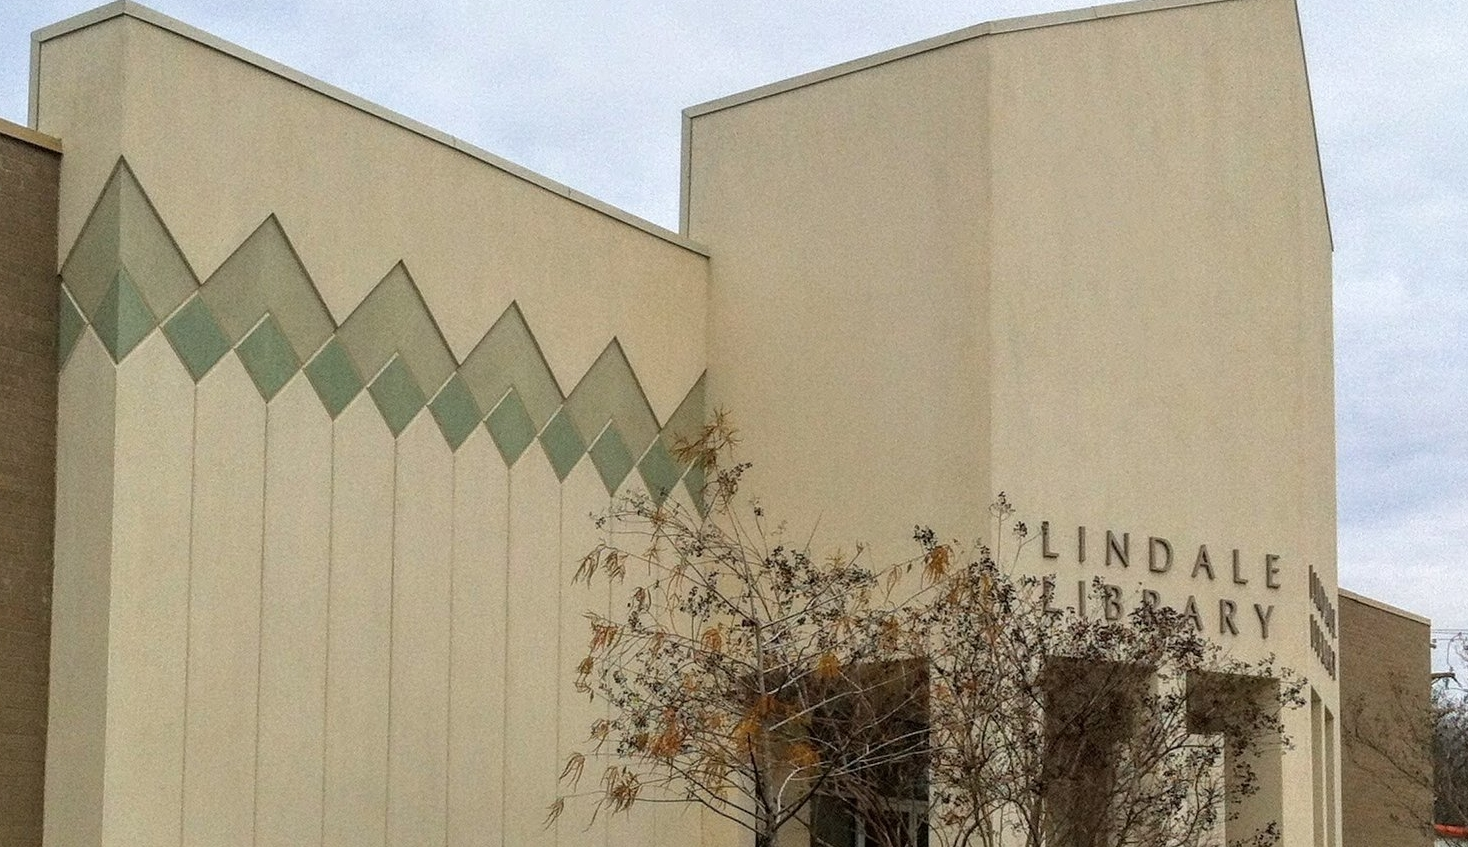 Lindale Library, Lindale, Texas